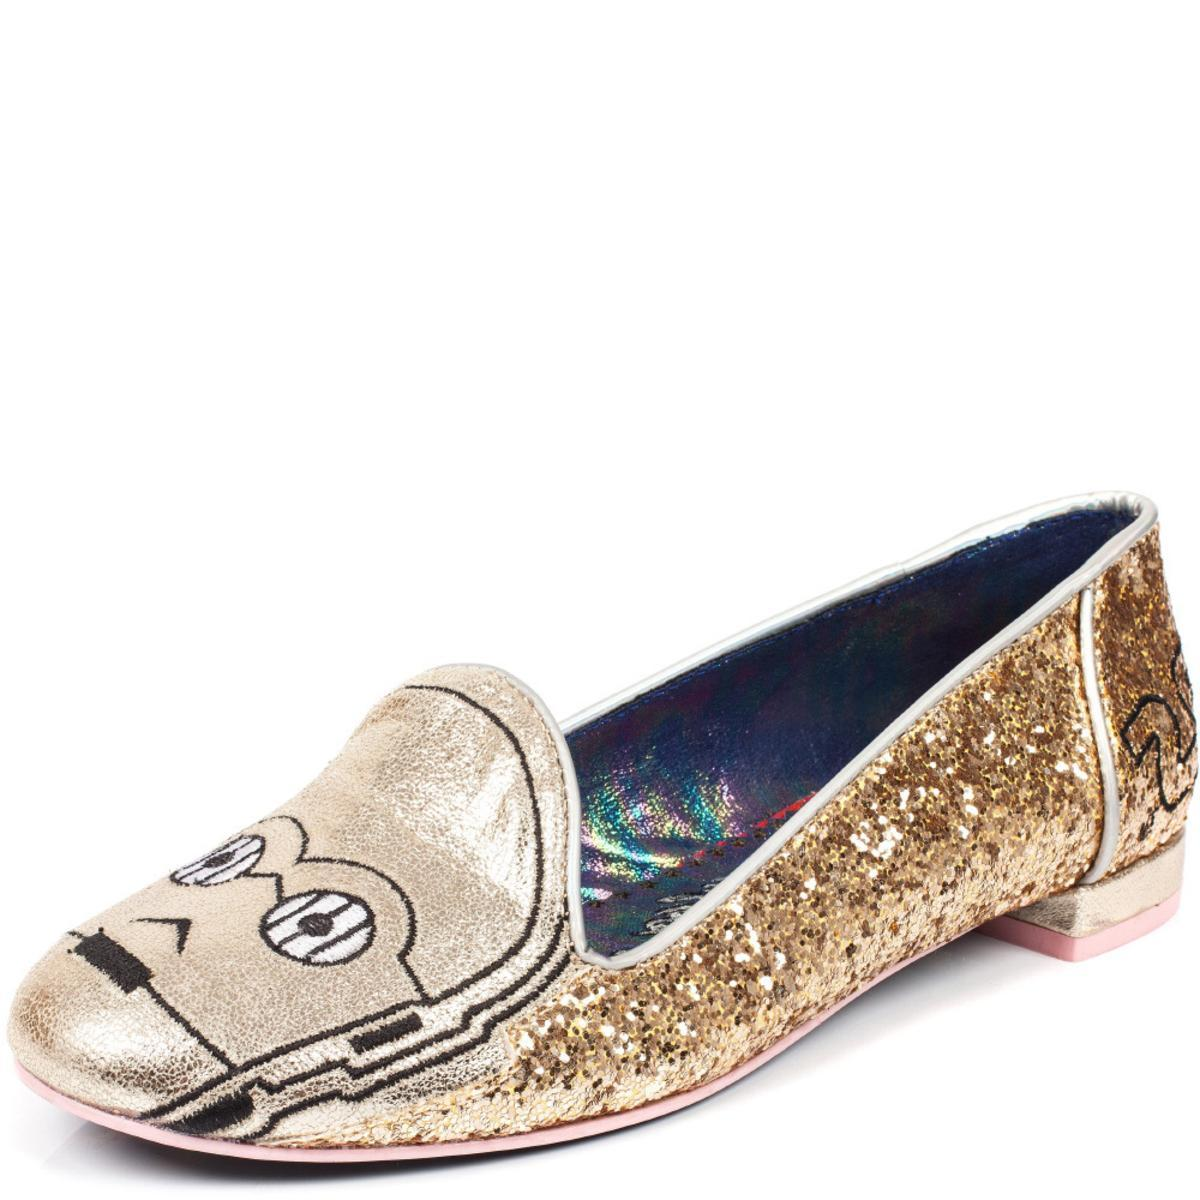 Irregular Choice Star Wars Collection: The Golden Droid